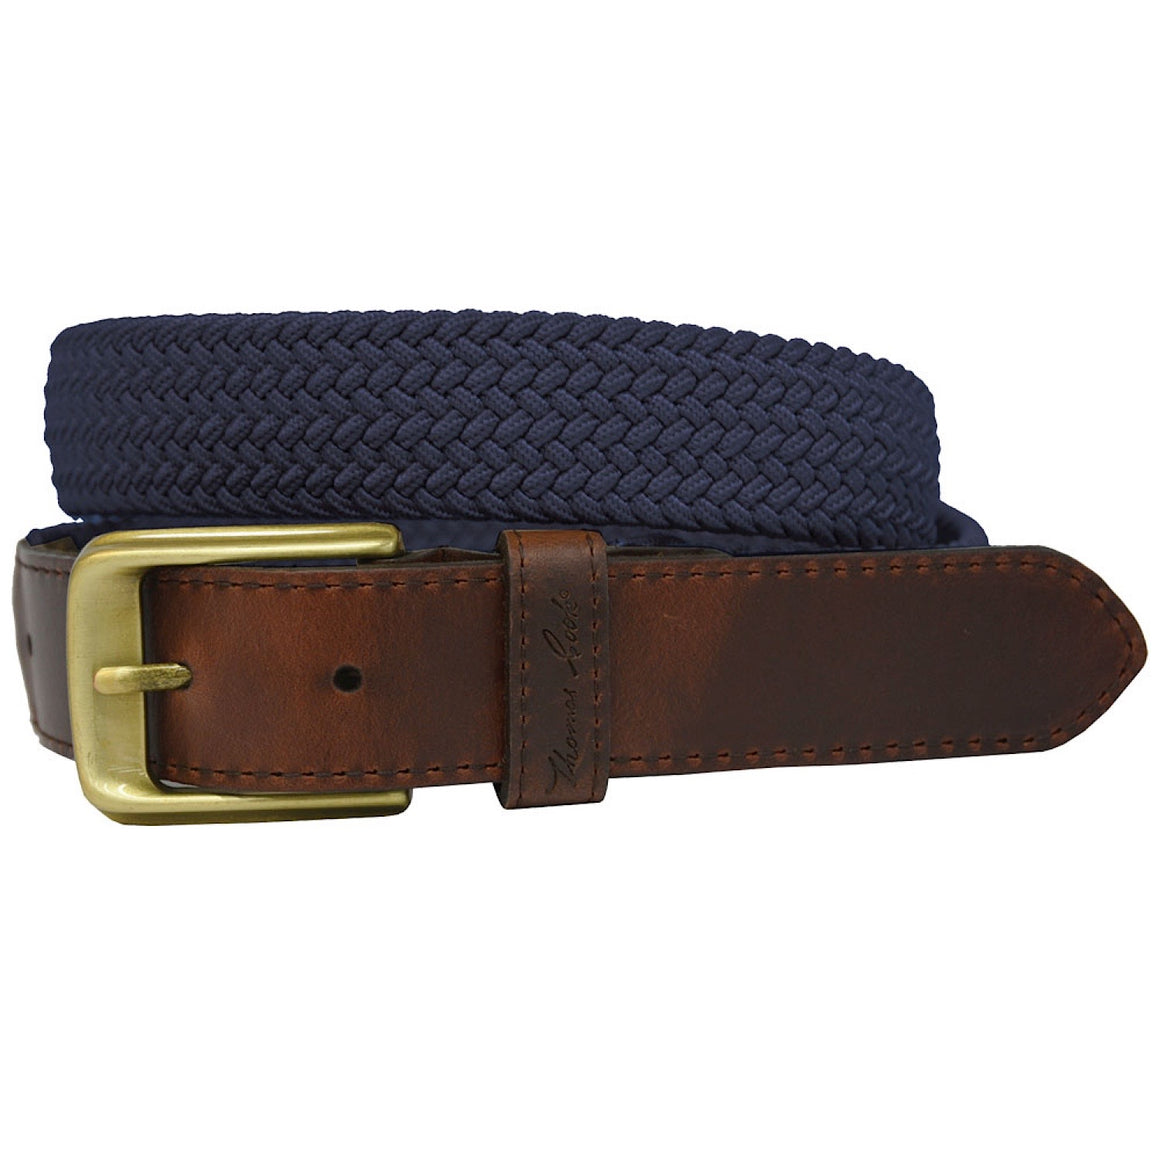 Thomas Cook Comfort Waist Belt Navy/Dark Brown